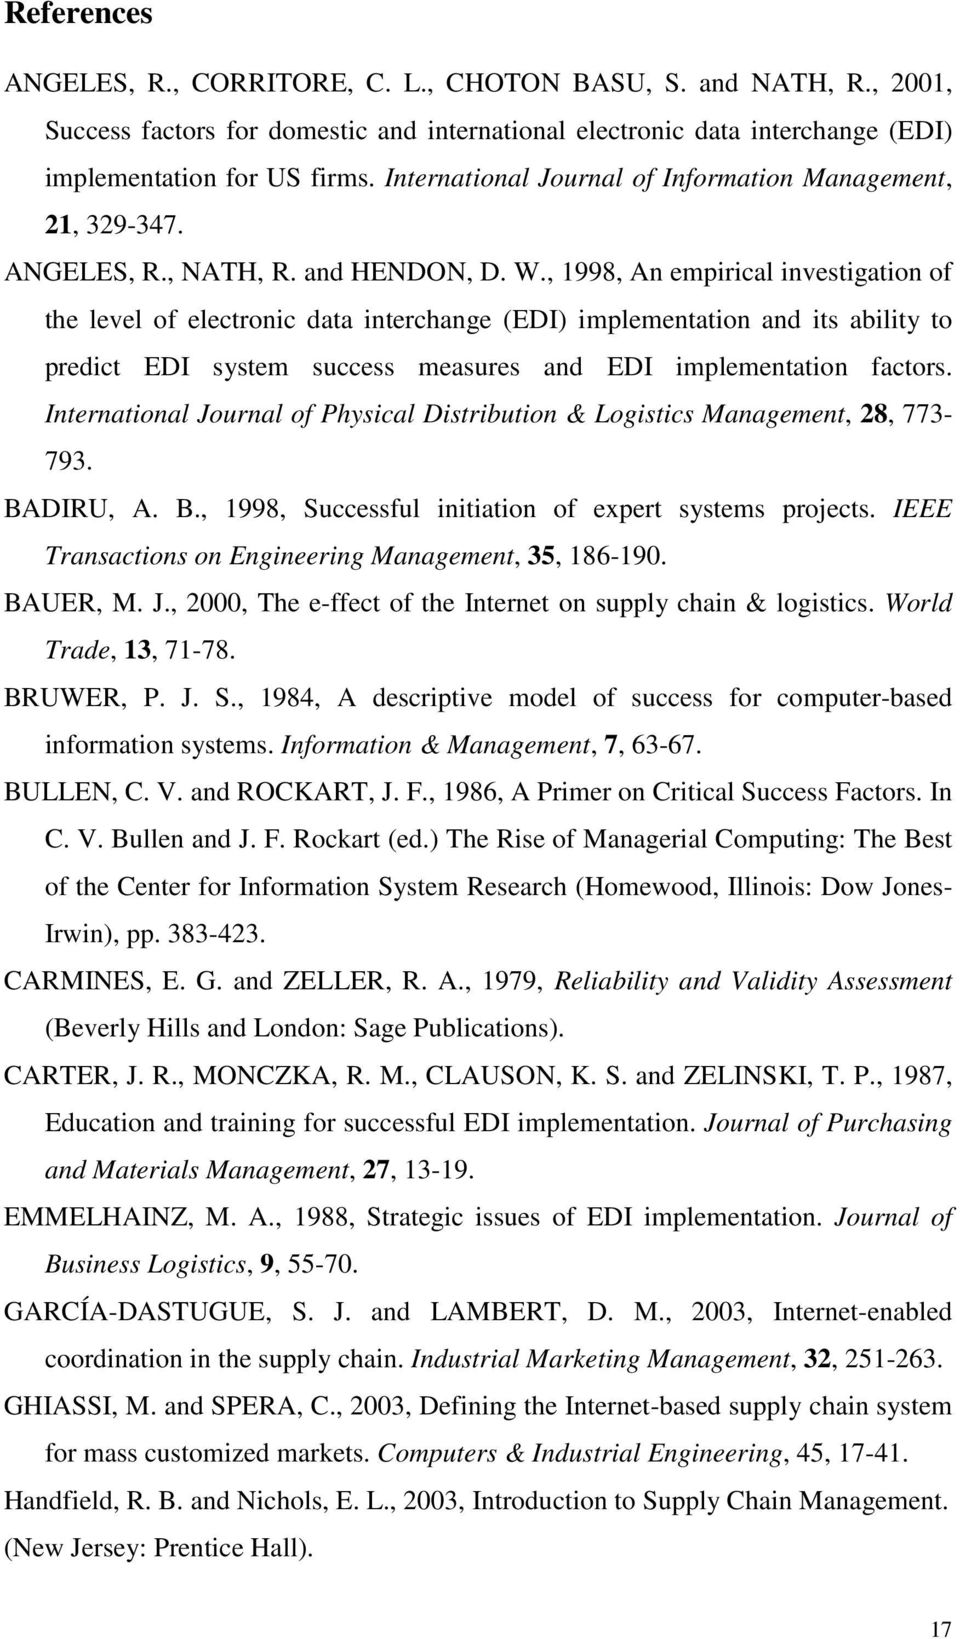 , 1998, An empirical investigation of the level of electronic data interchange (EDI) implementation and its ability to predict EDI system success measures and EDI implementation factors.